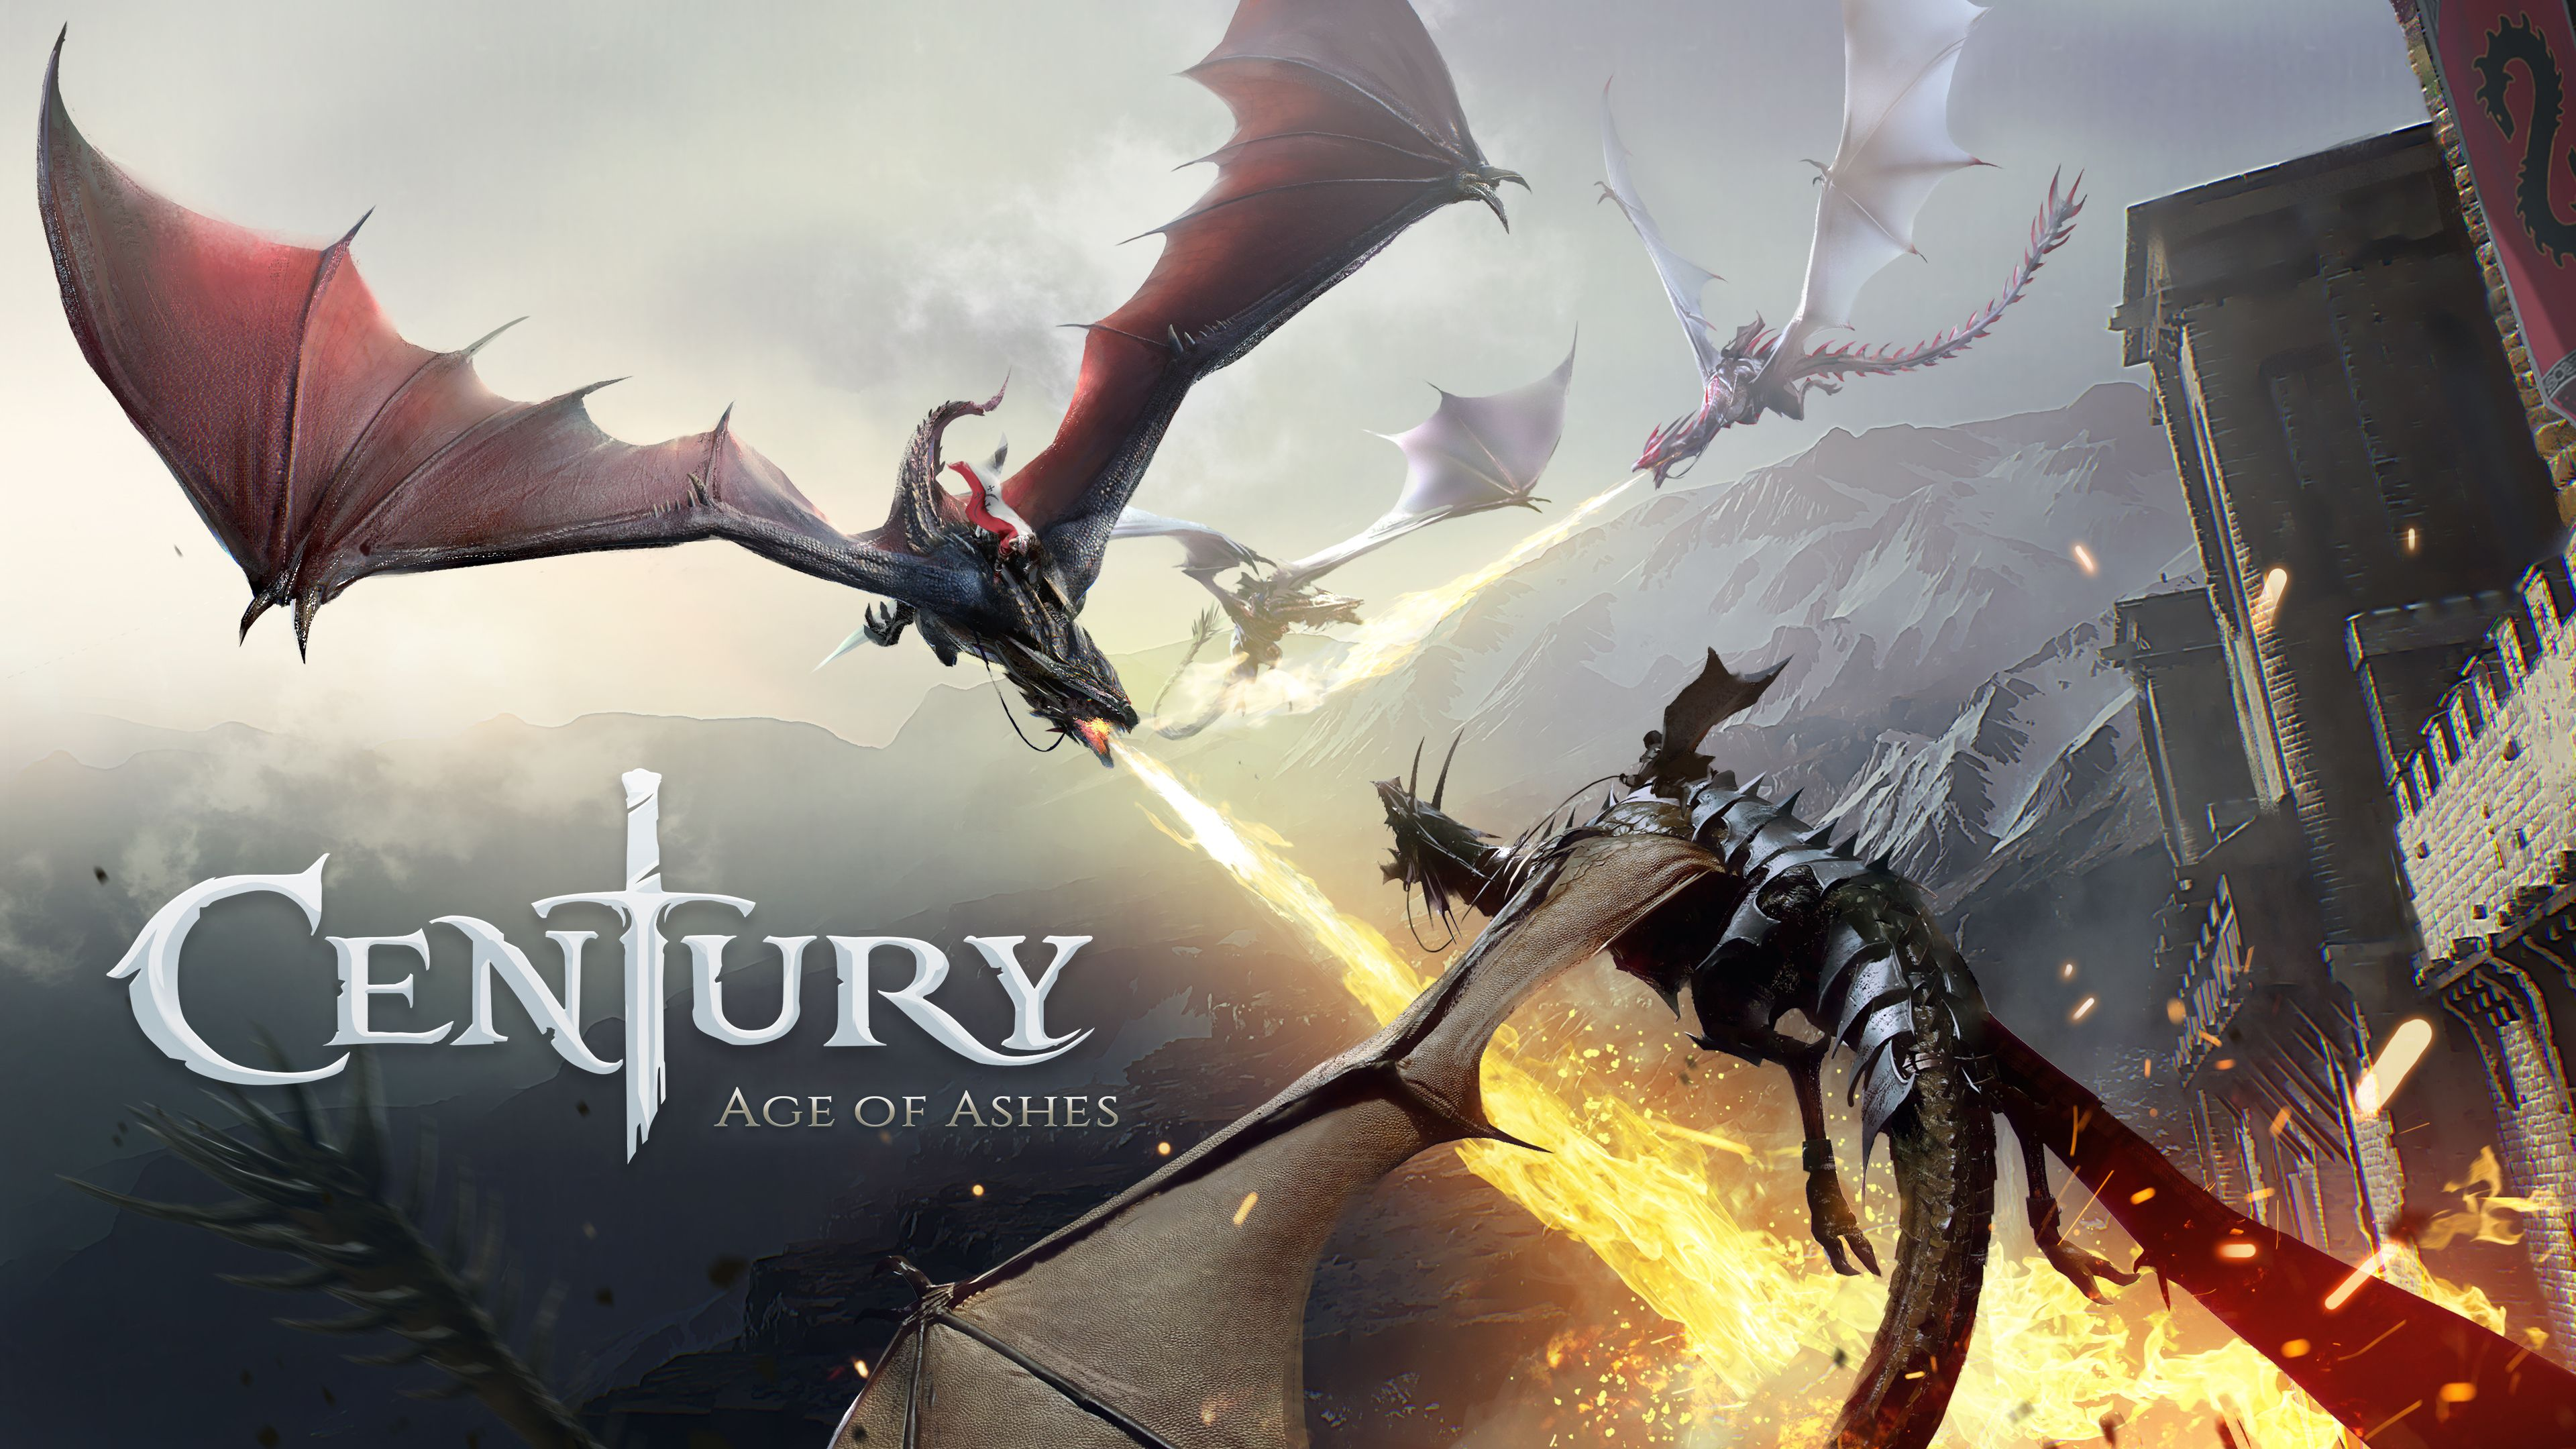 Century Age Of Ashes 2021 4k Century Age Of Ashes 2021 4k Wallpapers In 2021 Century Age Wallpaper